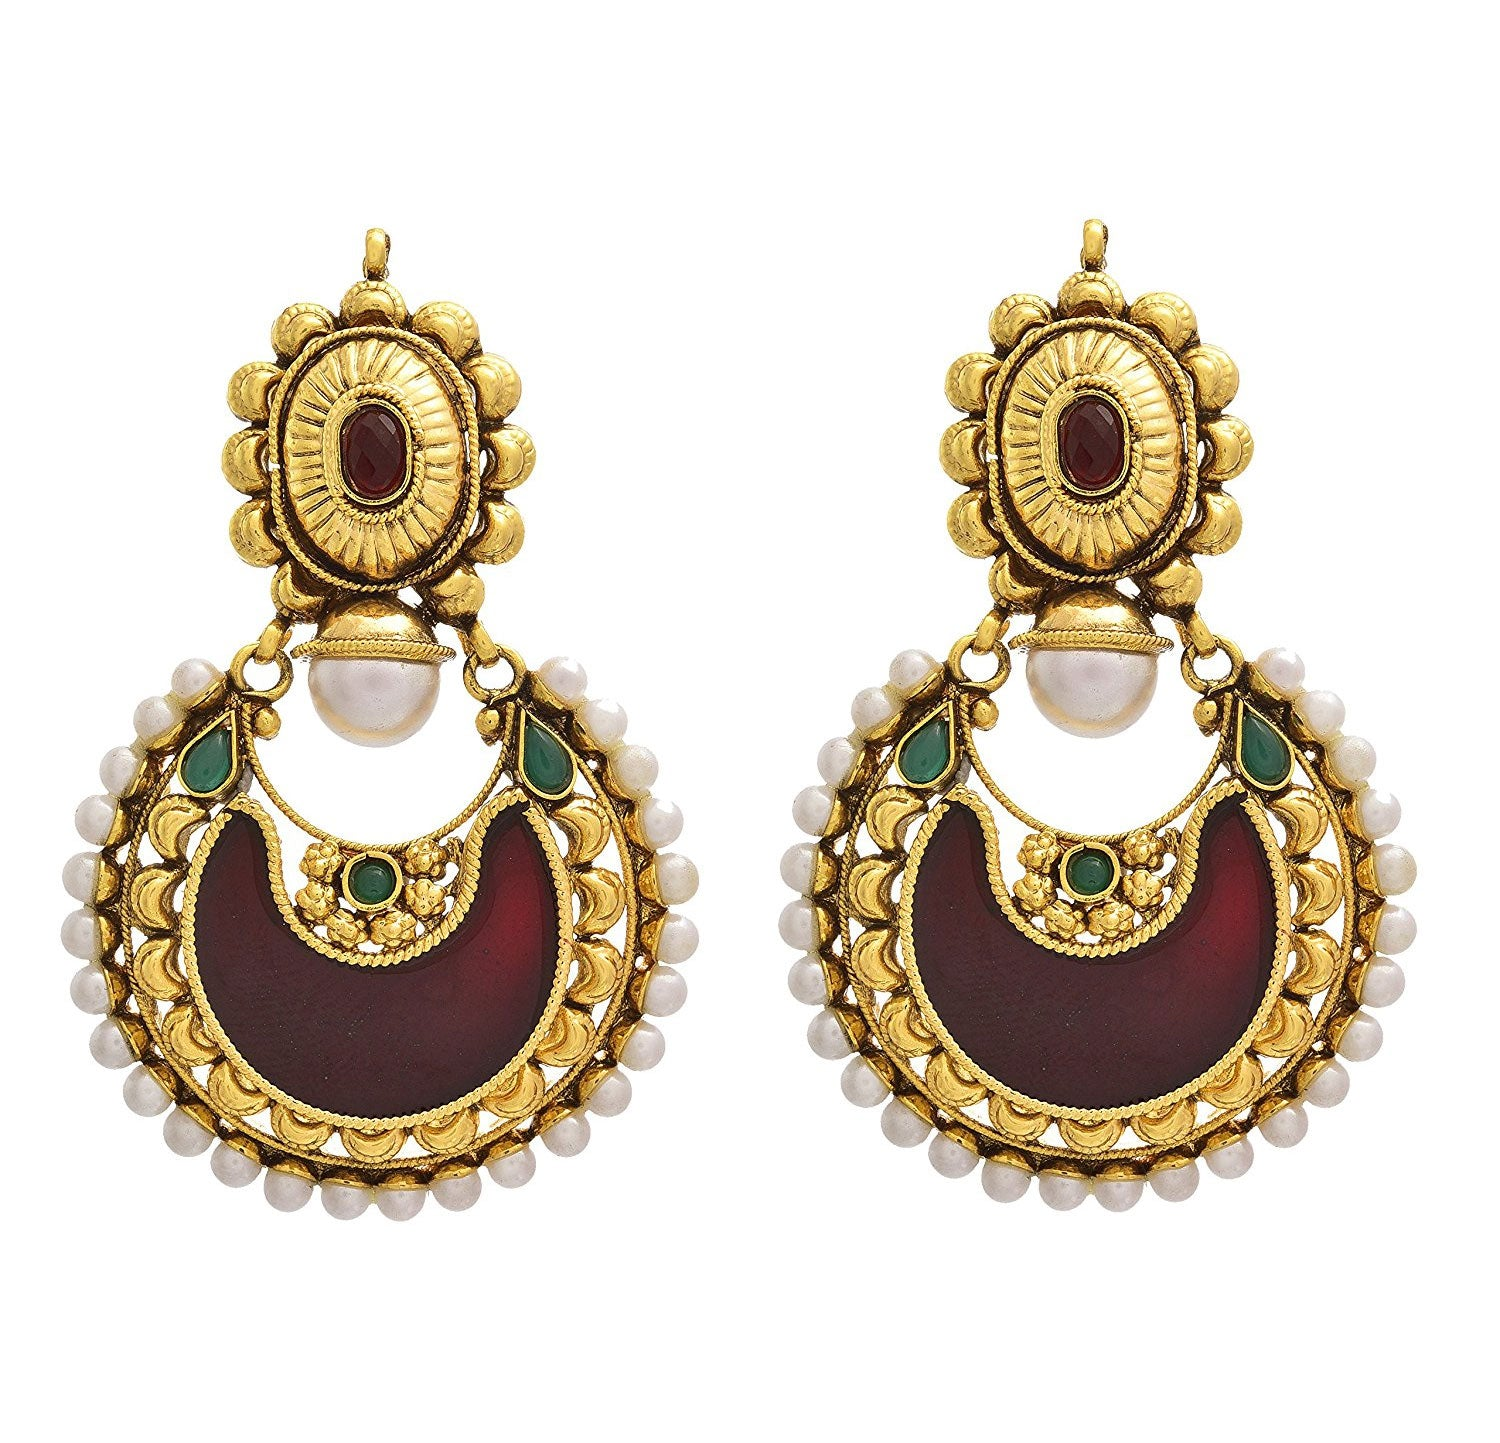 JFL- Traditional Ethnic One Gram Gold Plated Pearl Designer Chand Bali Earrings for Women and Girls.